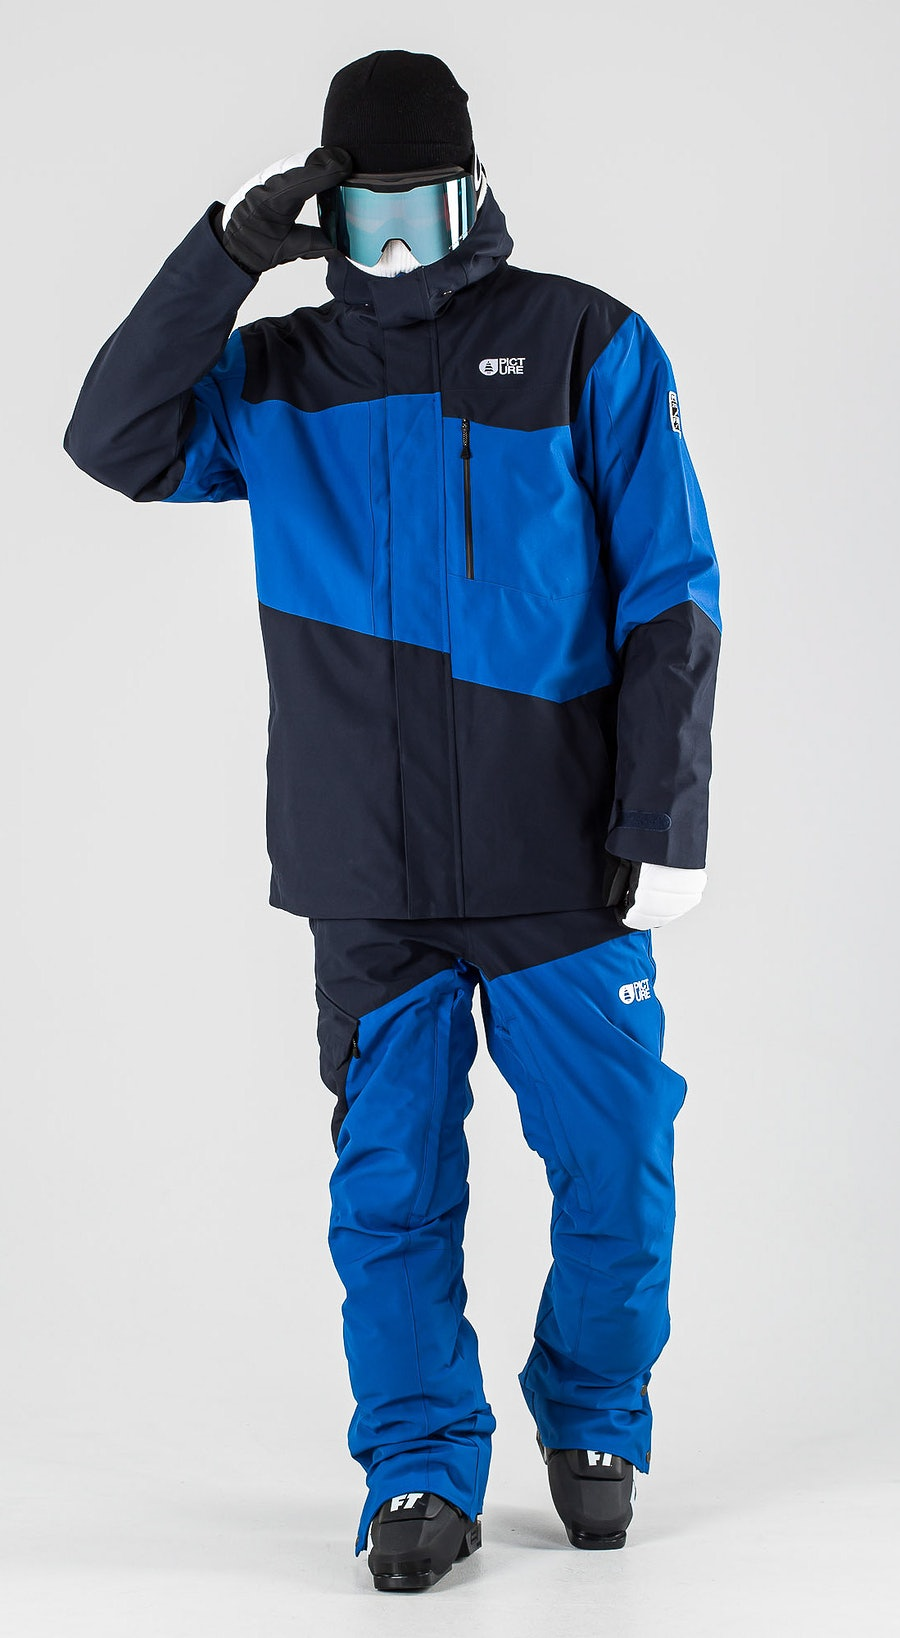 Picture Styler Blue Dark Blue Ski Clothing Multi